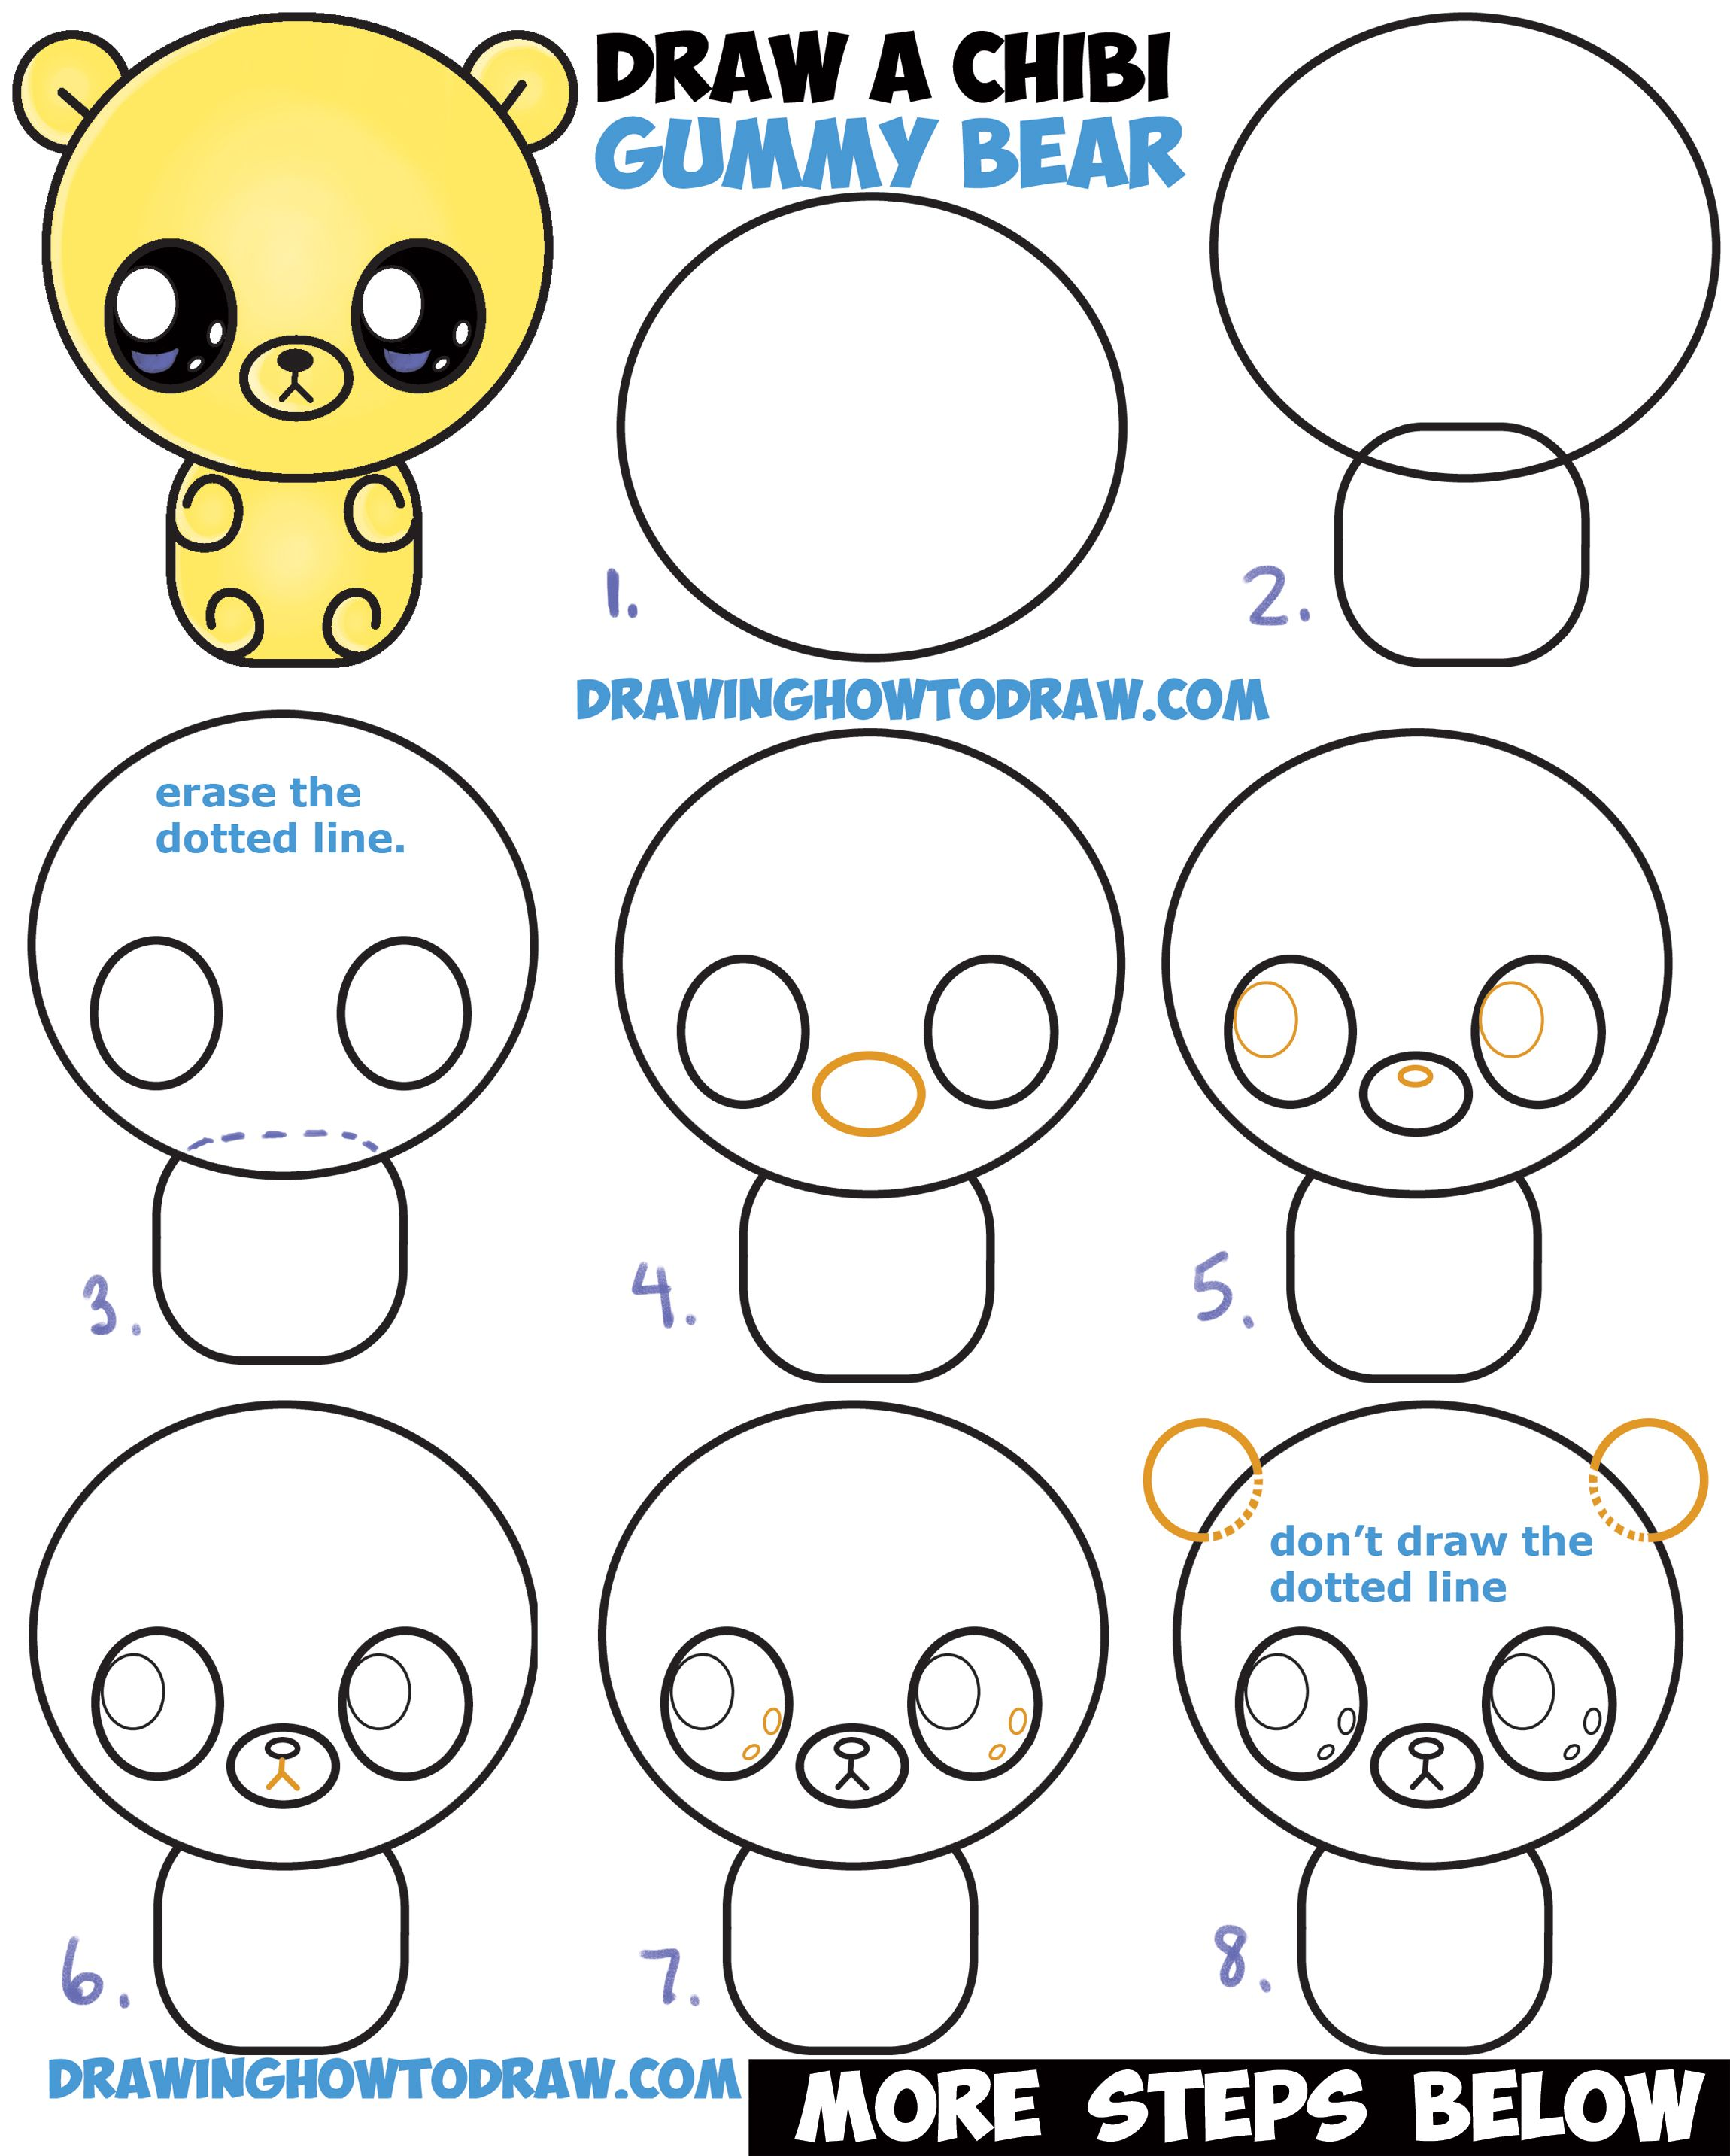 How To Draw A Cute Chibi Kawaii Cartoon Gummy Bear Easy Step